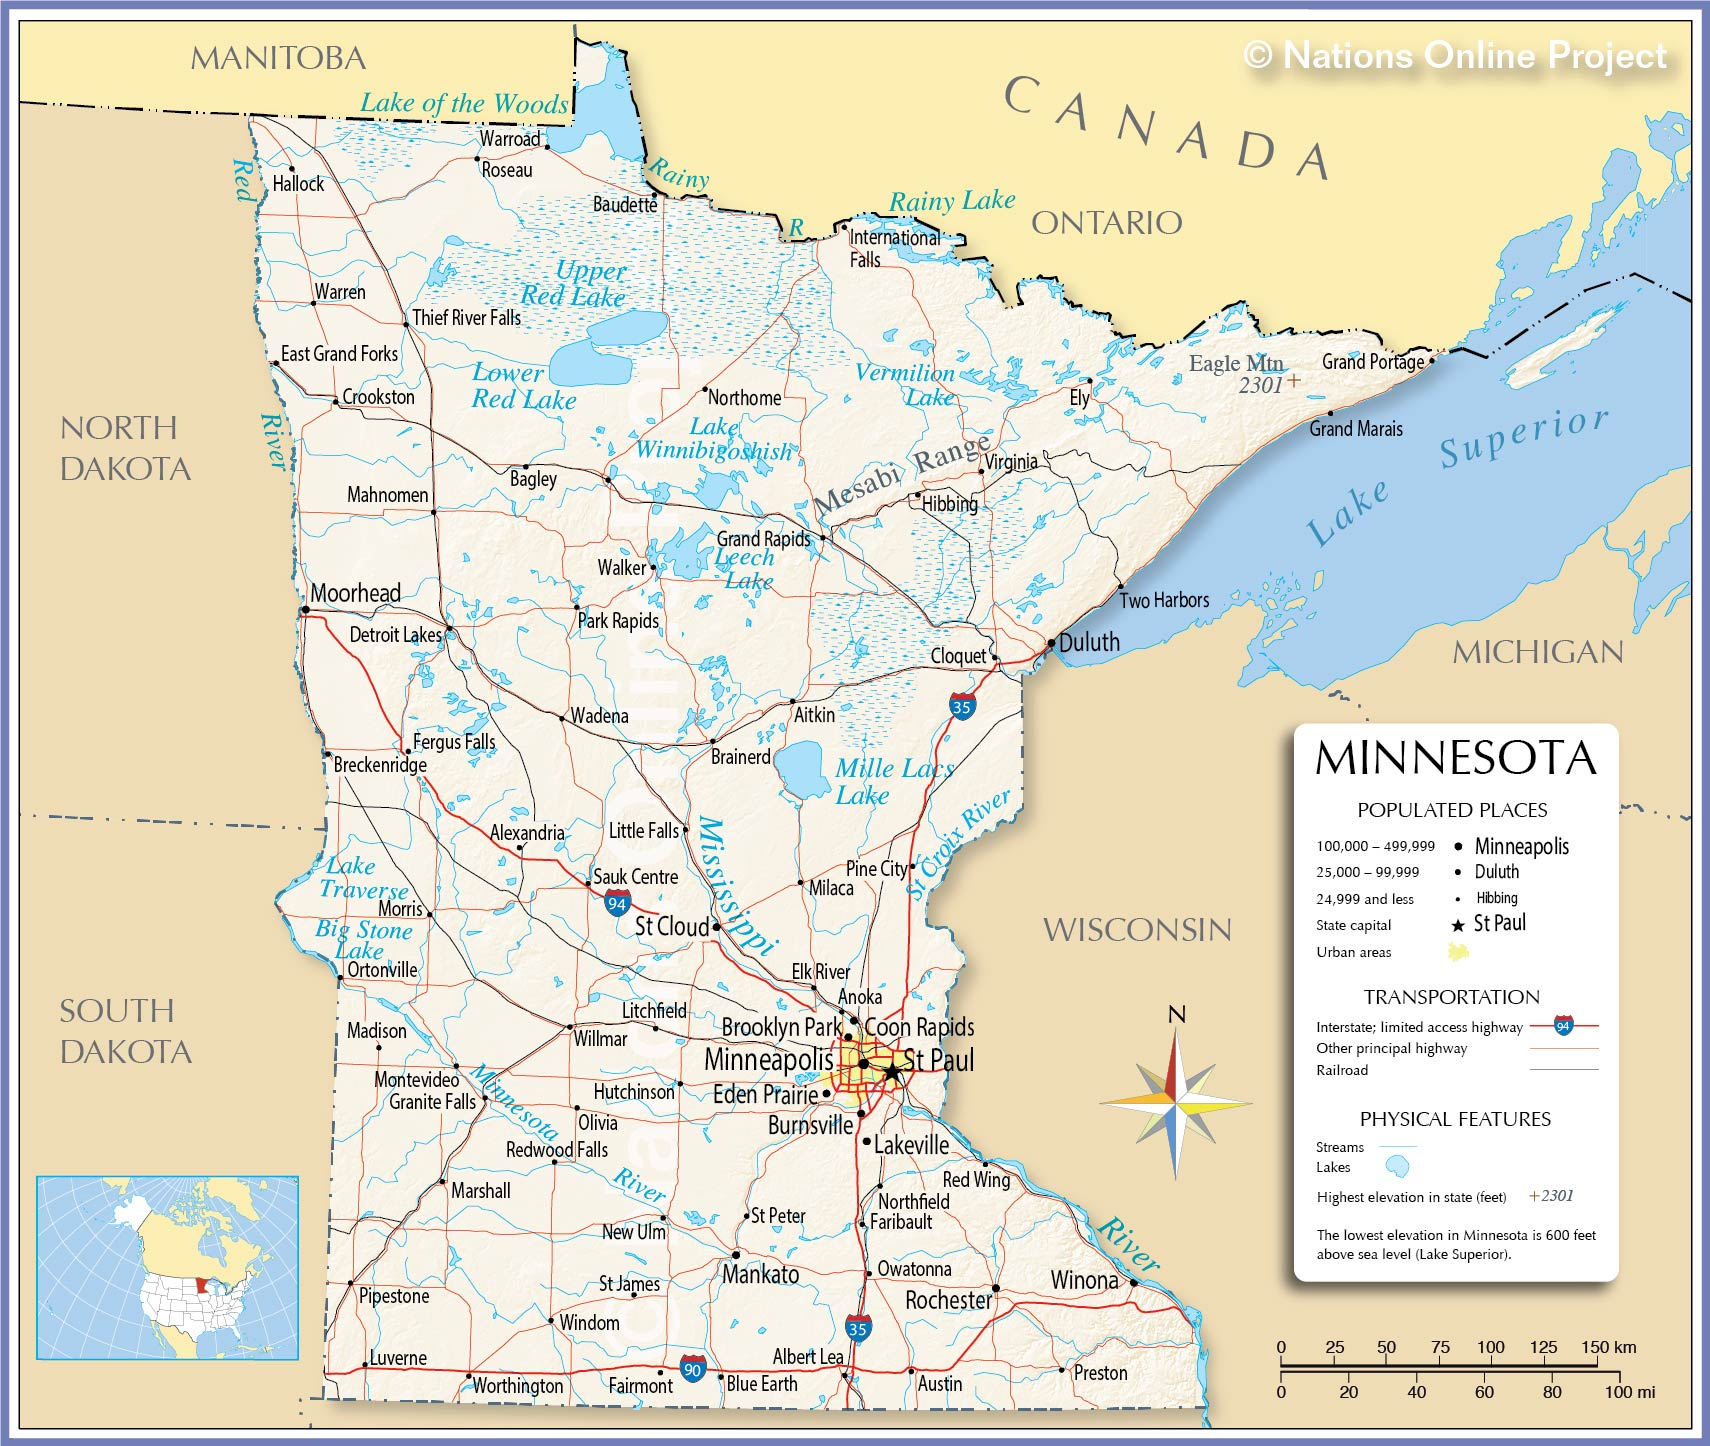 Reference Map of Minnesota USA Nations line Project